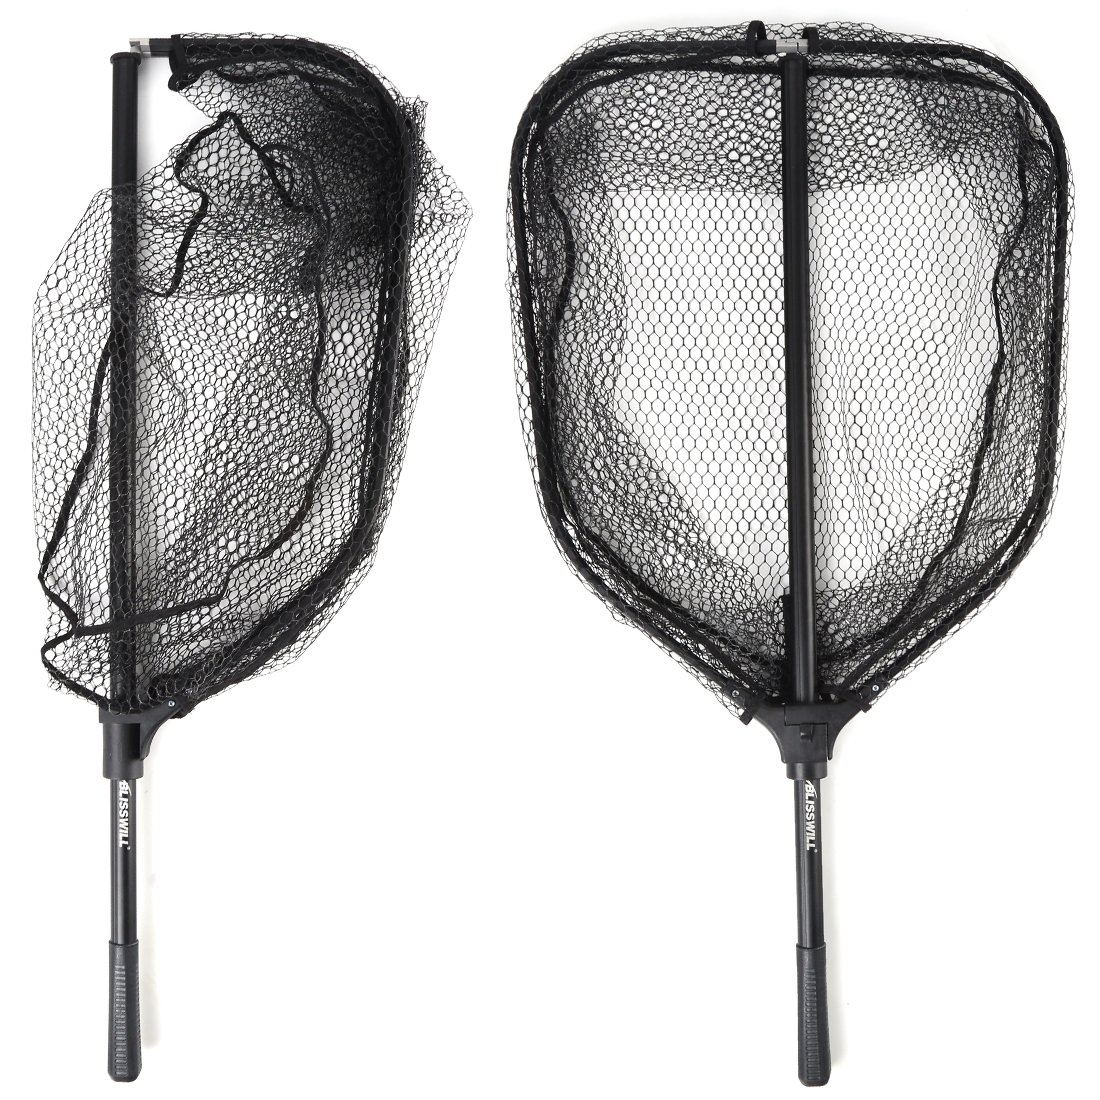 BLISSWILL Large Fishing Net Collapsible Fish Landing Net with Extending Telescoping Pole Handle Durable Nylon Material Mesh Safe Fishing Catching and Releasing Knotless Fishing Net